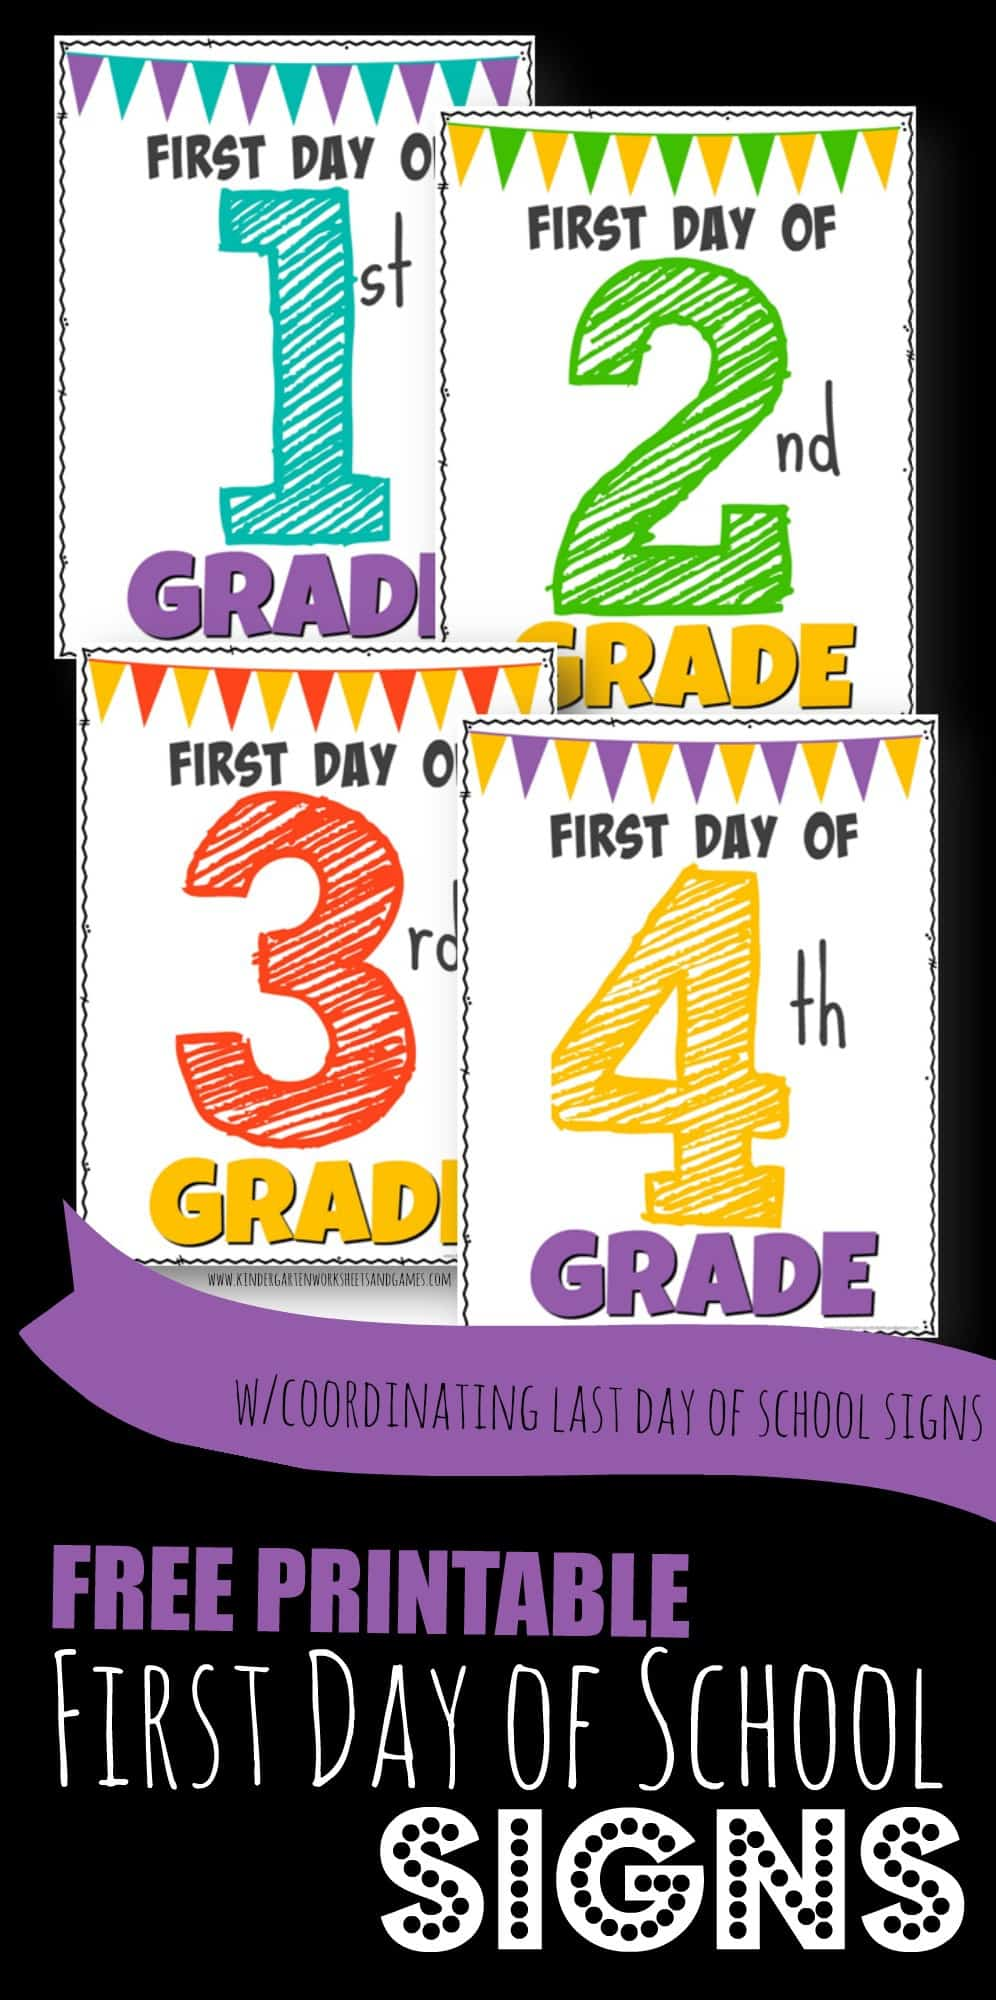 hight resolution of FREE Printable First Day of School Signs